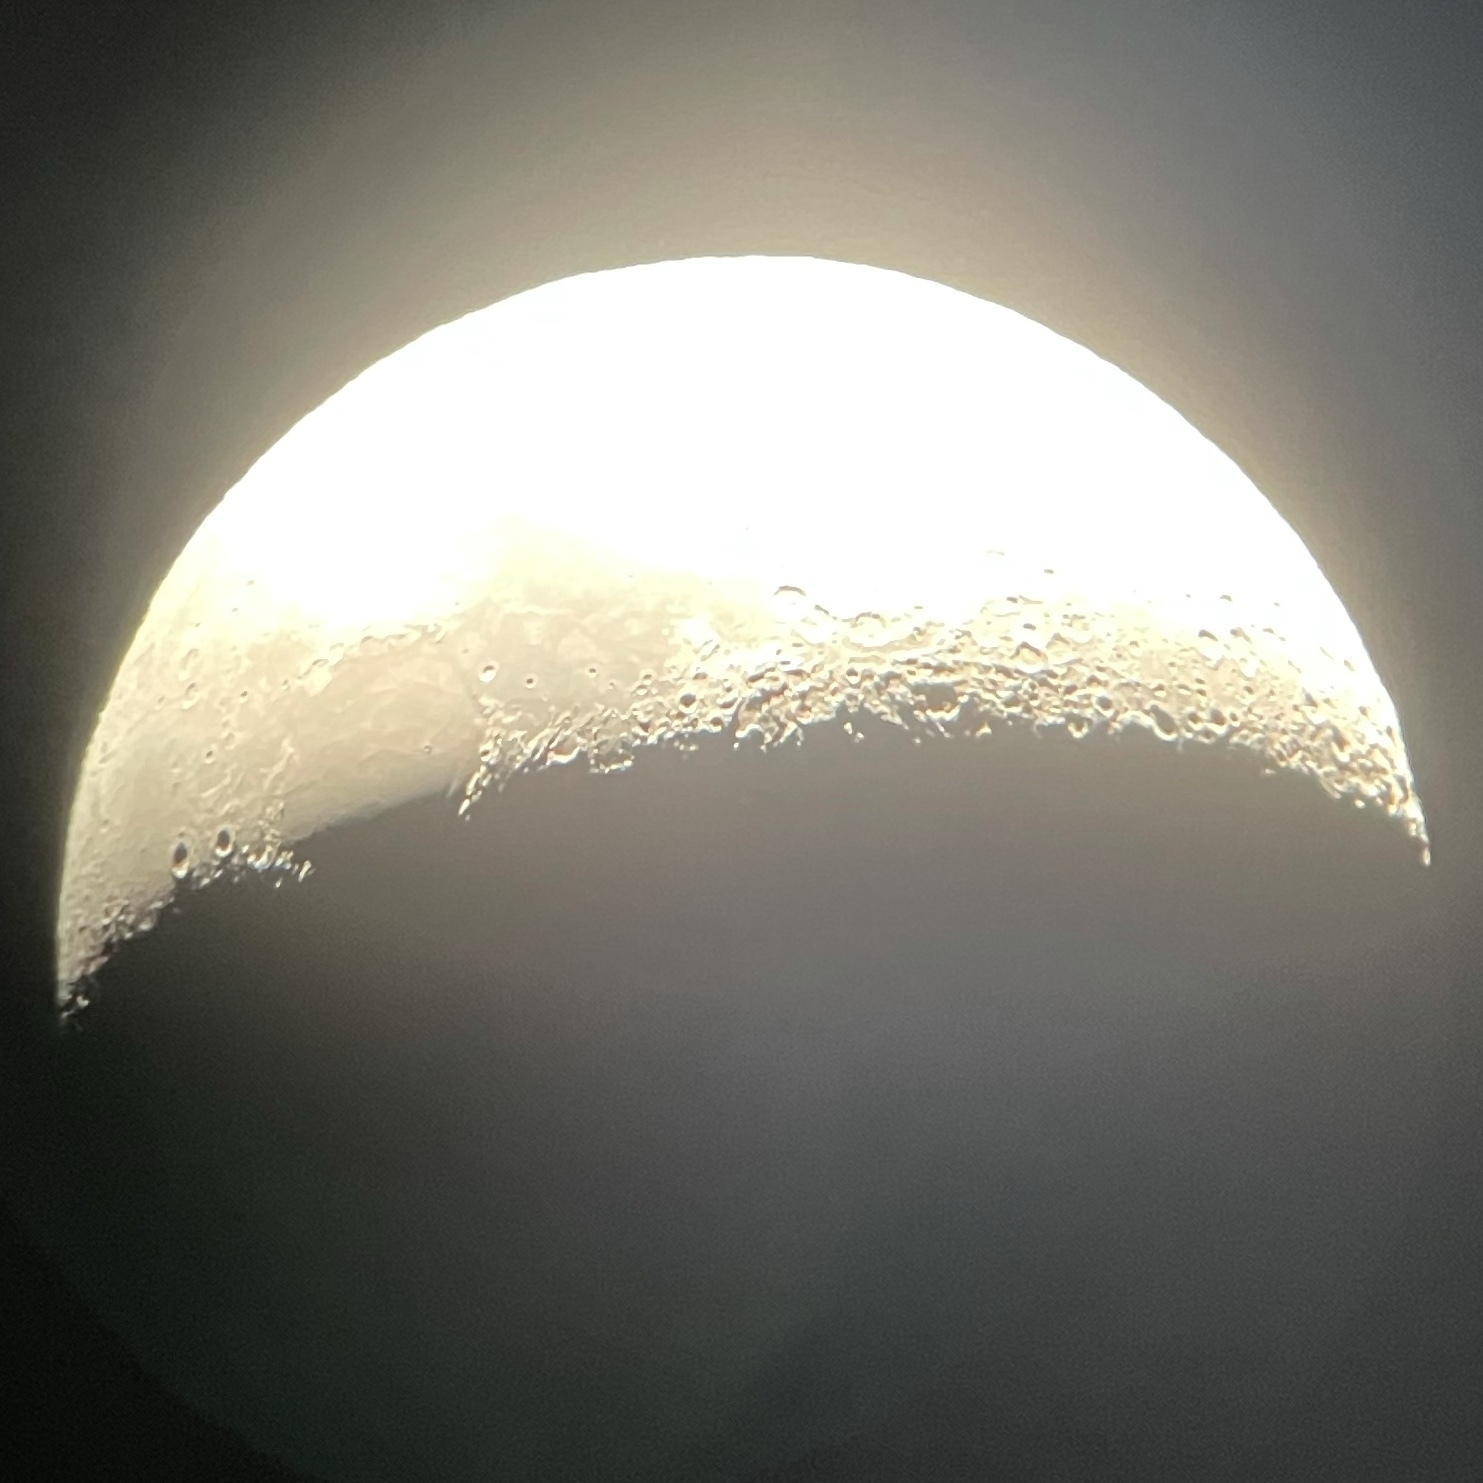 The moon, in epic detail through a telescope. The teleif of the sirface features are stark and the detail in the relief of surface features make it look loke you could run your fingers along the sueface.